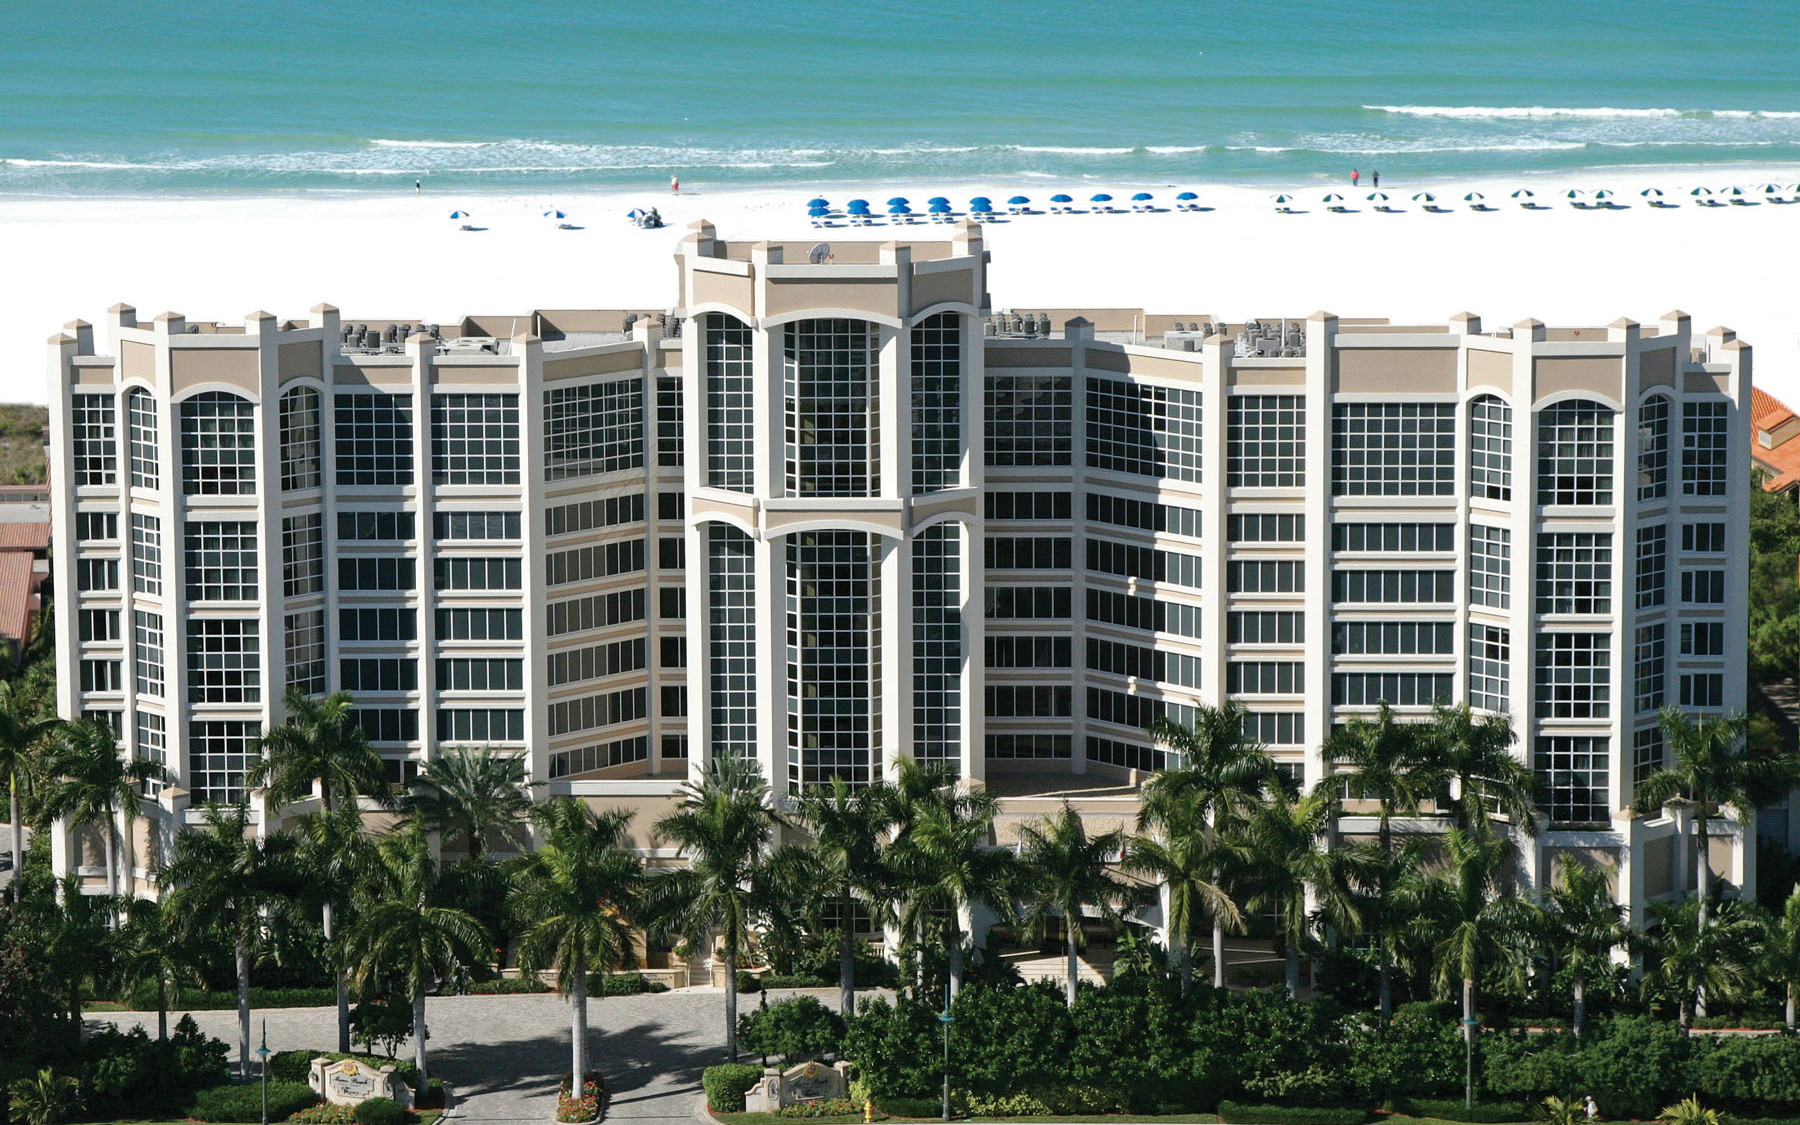 Best Family Beach Hotels:  No. 23 Marco Beach Ocean Resort, Naples, FL